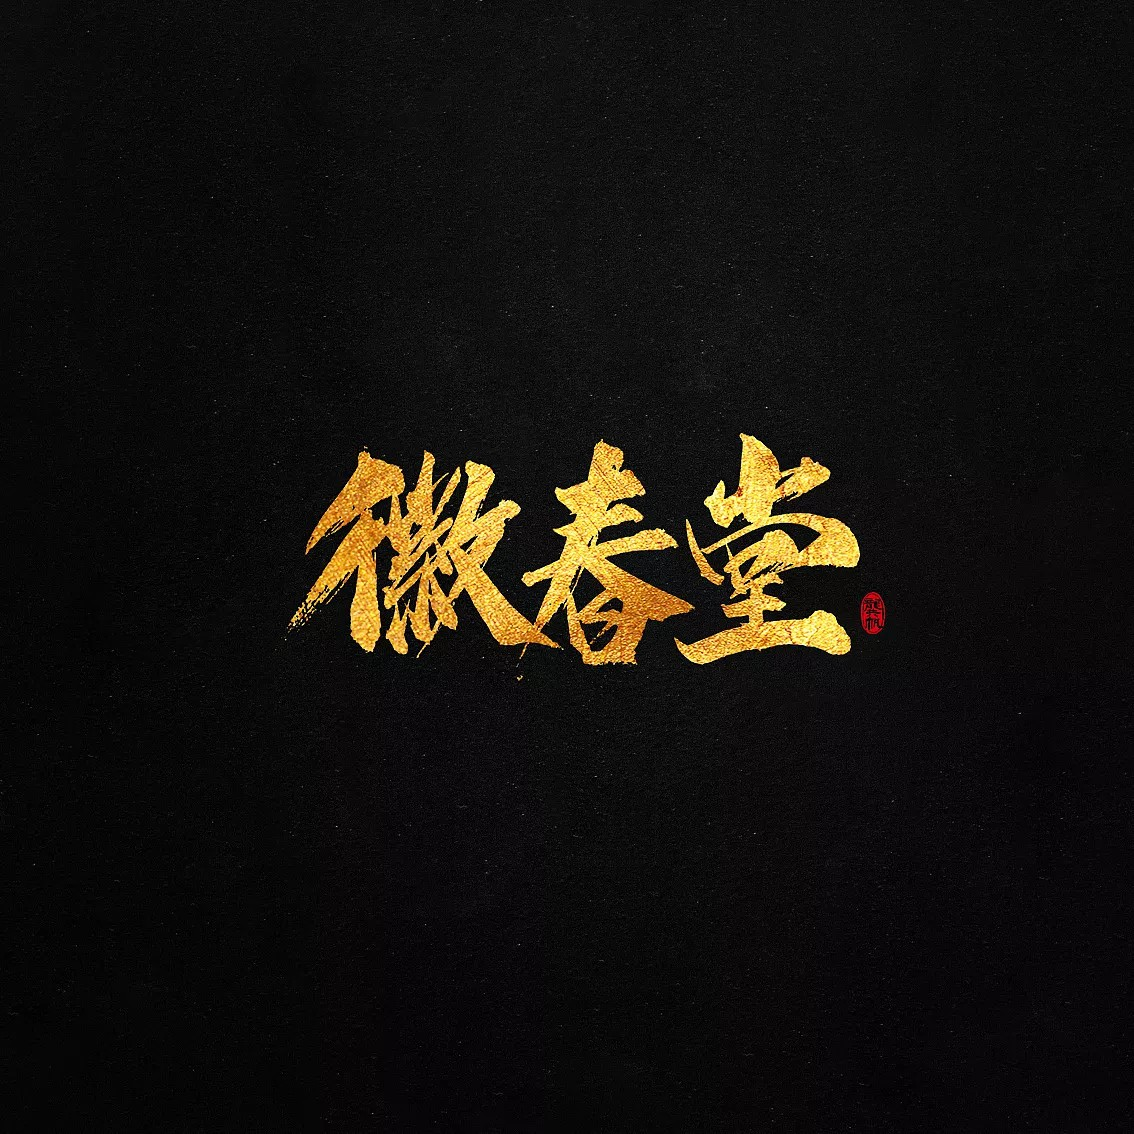 chinesefontdesign.com 2018 03 12 12 54 51 441340 12P Chinese traditional calligraphy brush calligraphy font style appreciation #105